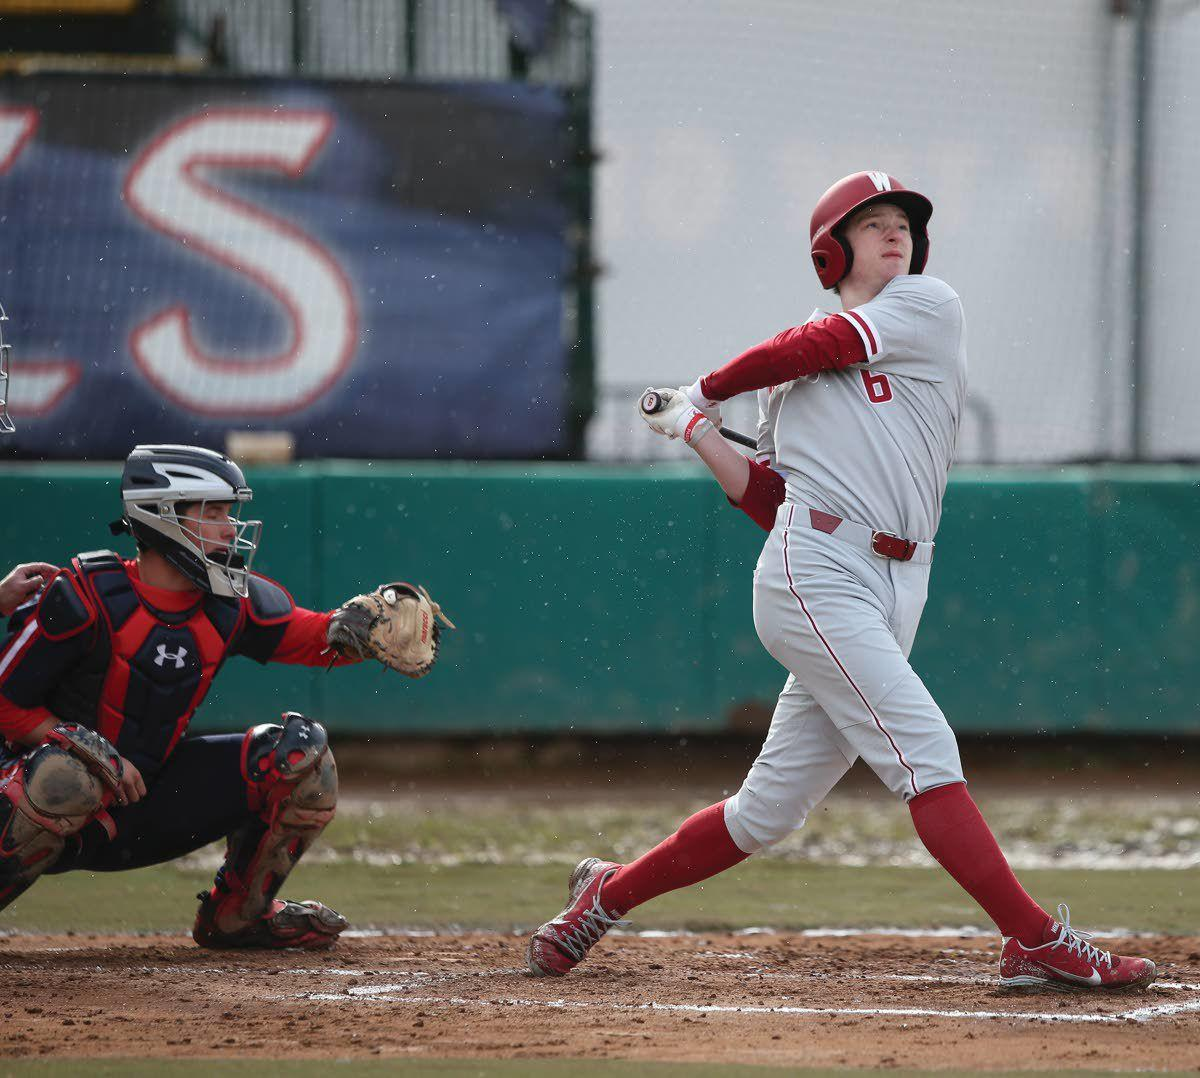 From Little League to WSU